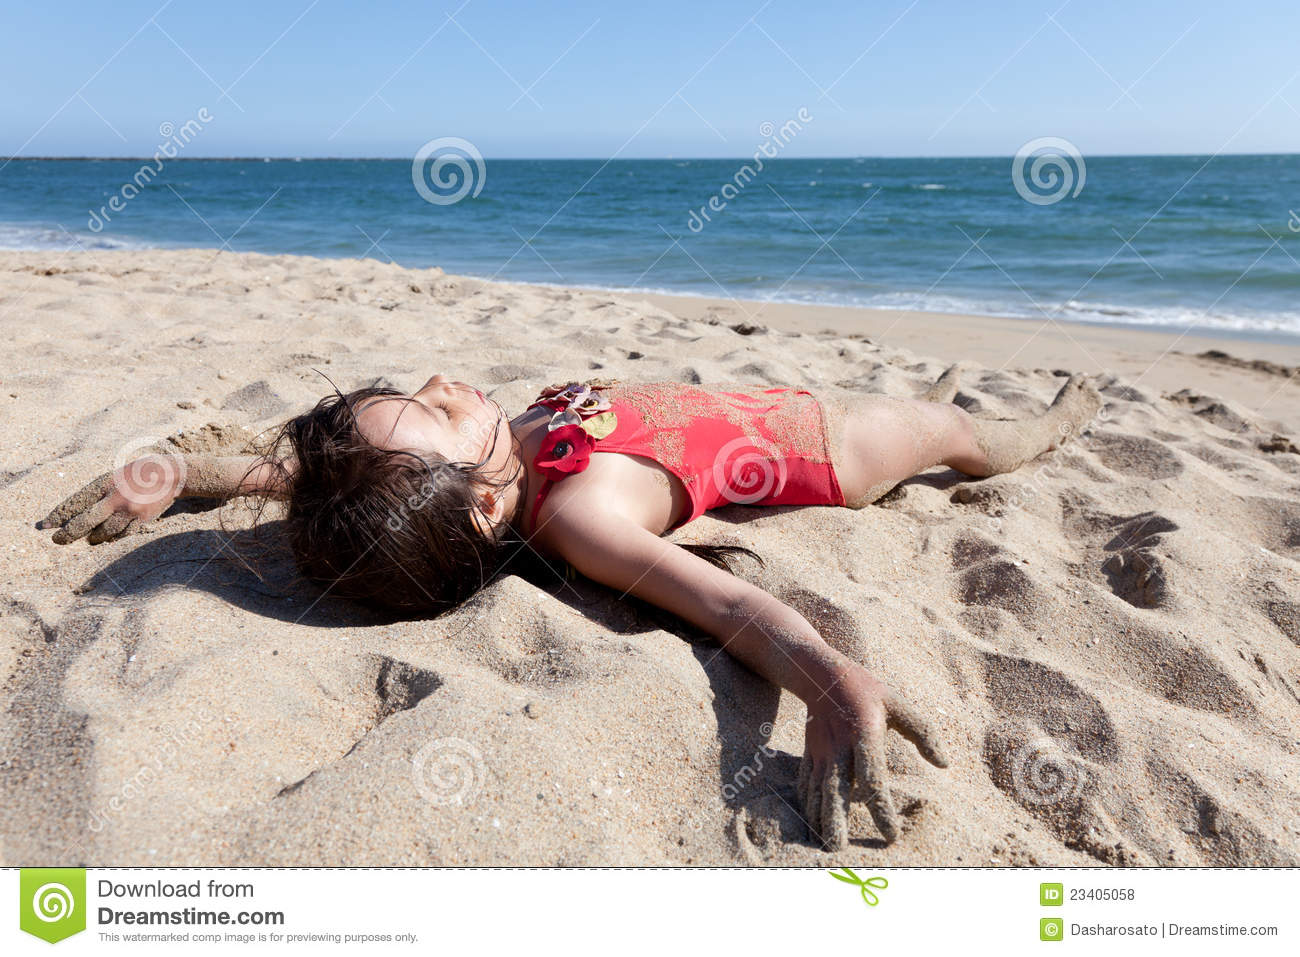 ... in red bathing suit on the beach with ocean and sky in the background